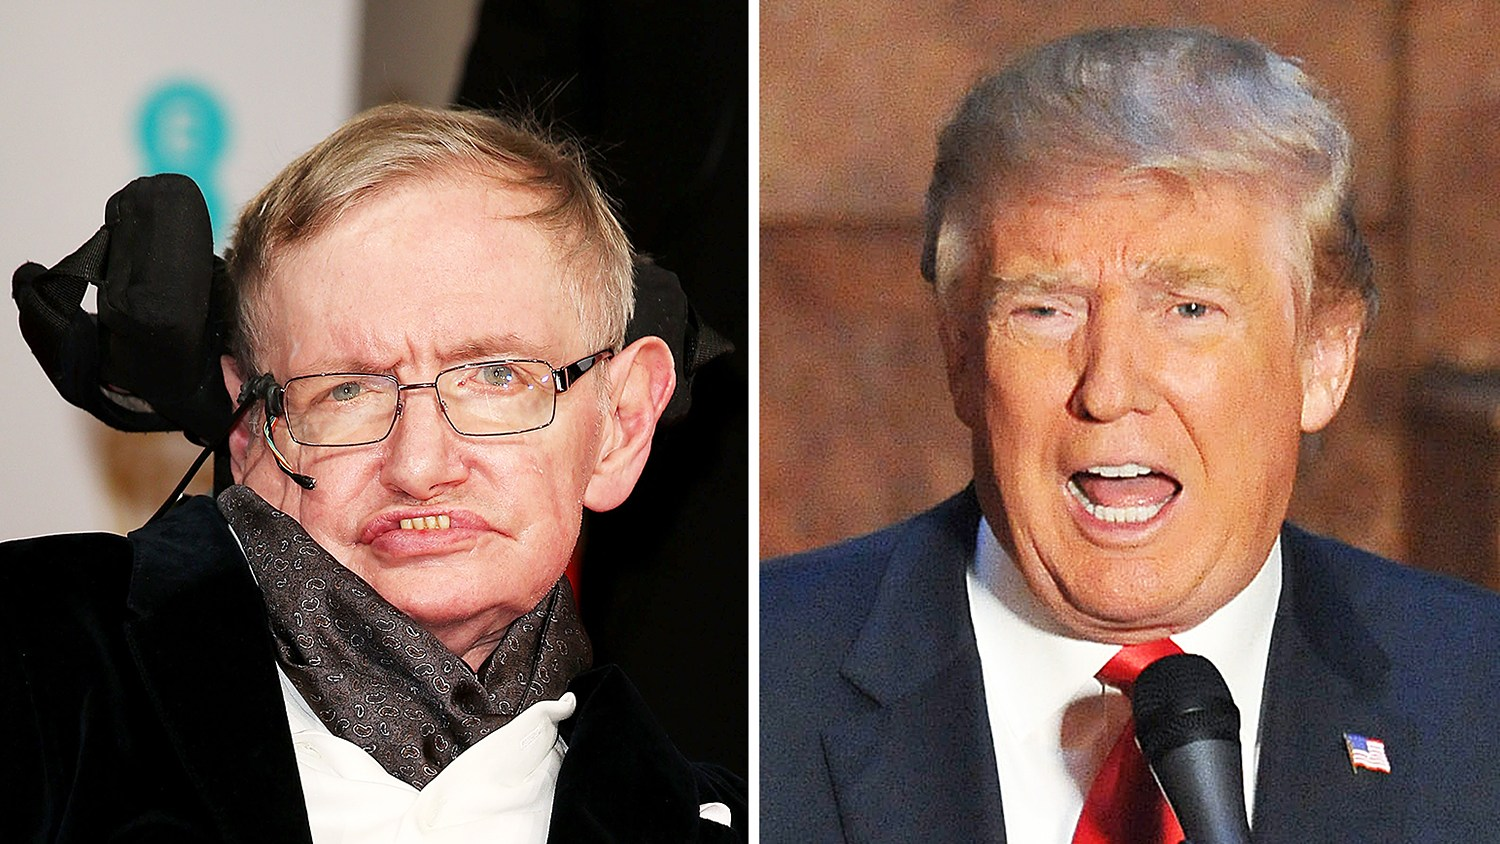 Stephen Hawking and Donald Trump